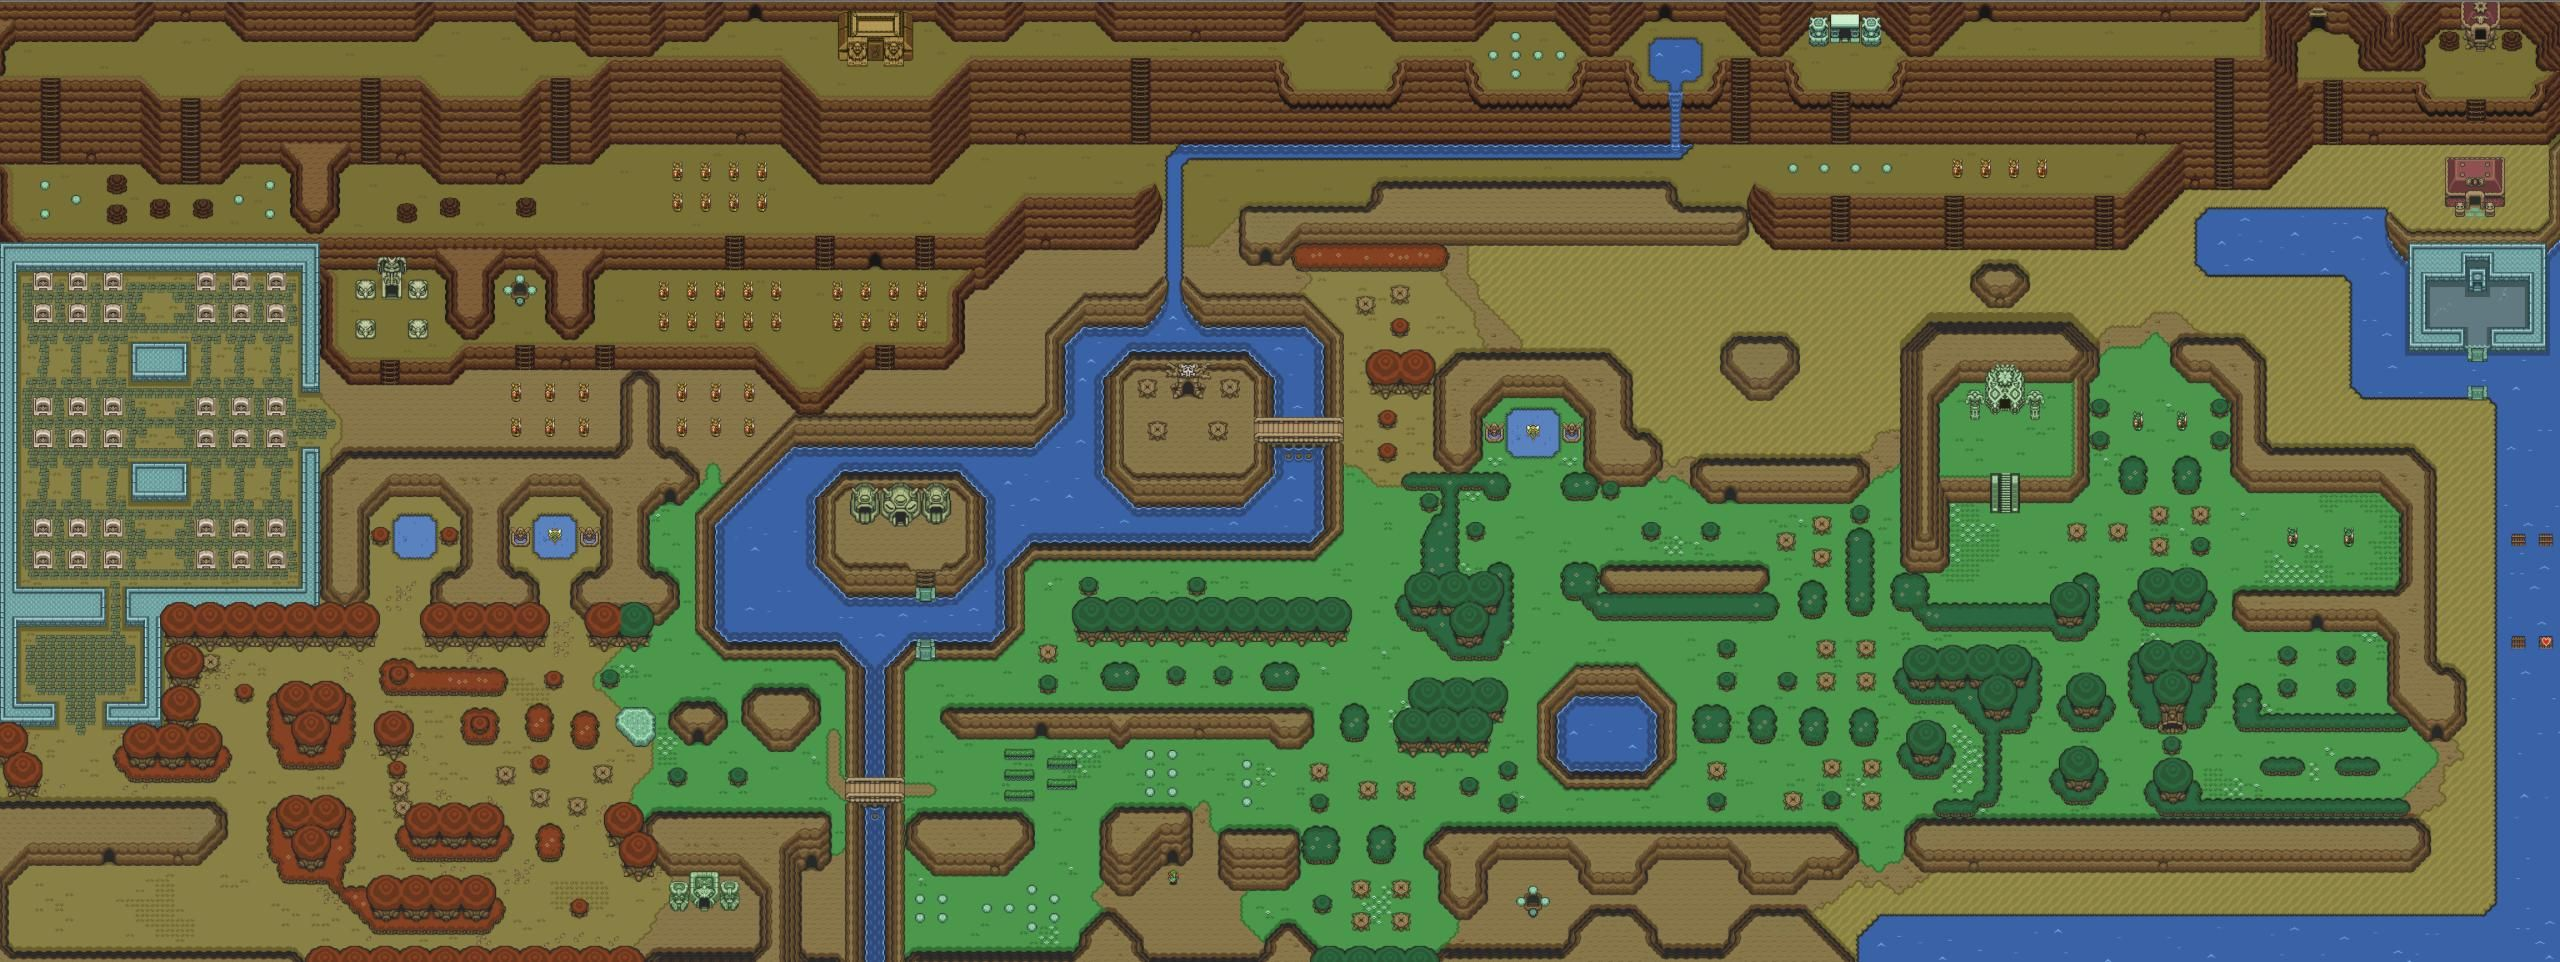 The Legend Of Zelda World Map Recreated With A Link To Past And Legend Of Zelda Zelda Hd Zelda Ideas for zelda link to past map